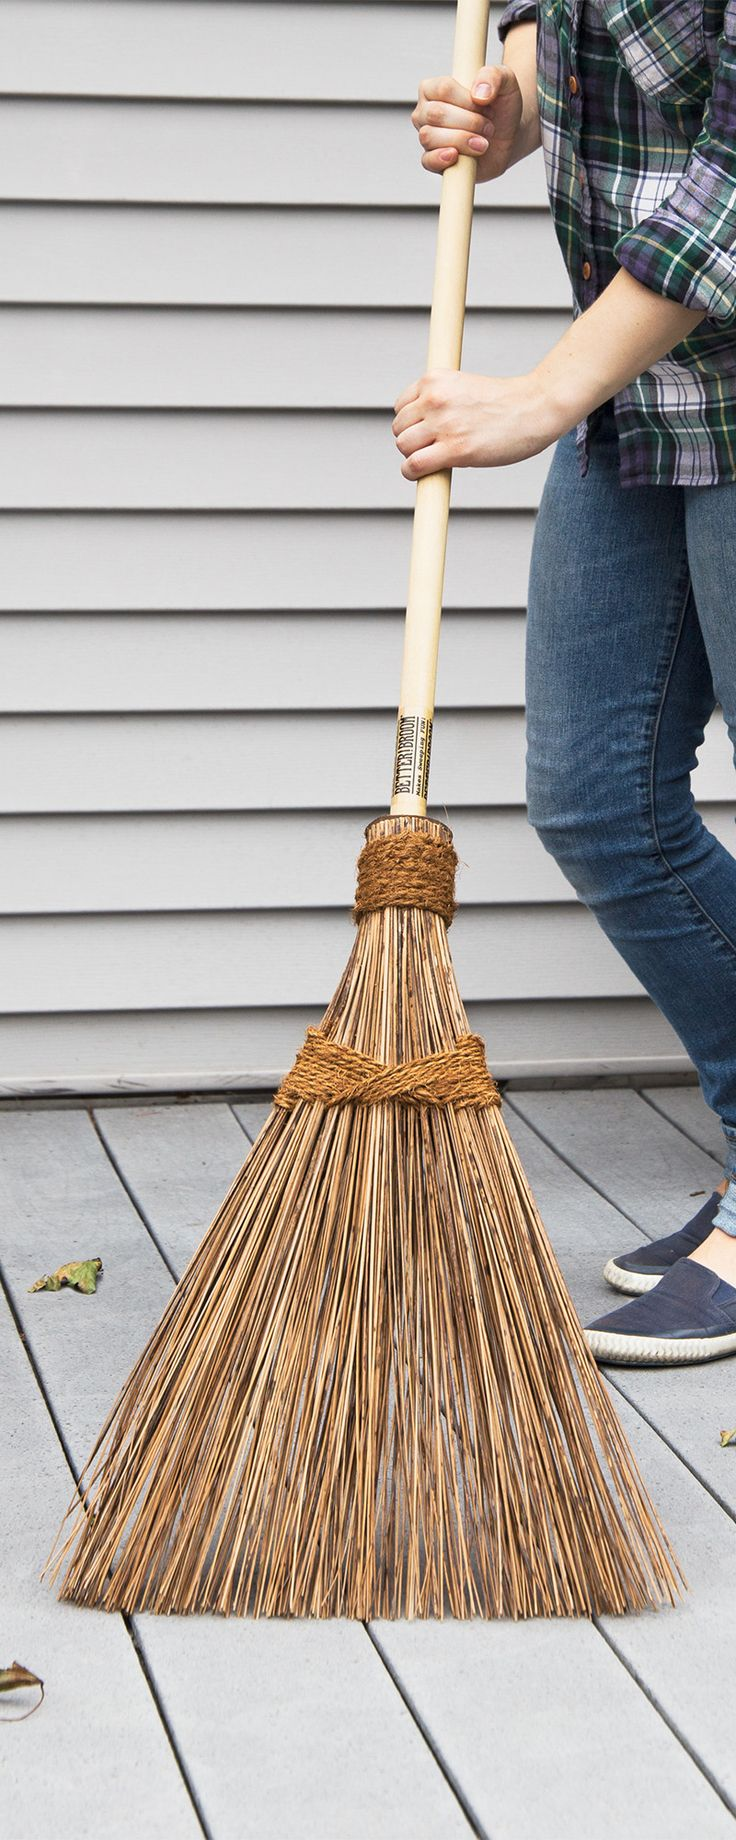 This surprisingly sturdy coconut palm broom makes sweeping a breeze. It's durable enough to work indoors and out, and is made from palm fronds secured with coir (coconut shell fiber) for extra strength. From dirt to leaves and even light snow, this all-season broom is an all-natural, effective new way to sweep up.